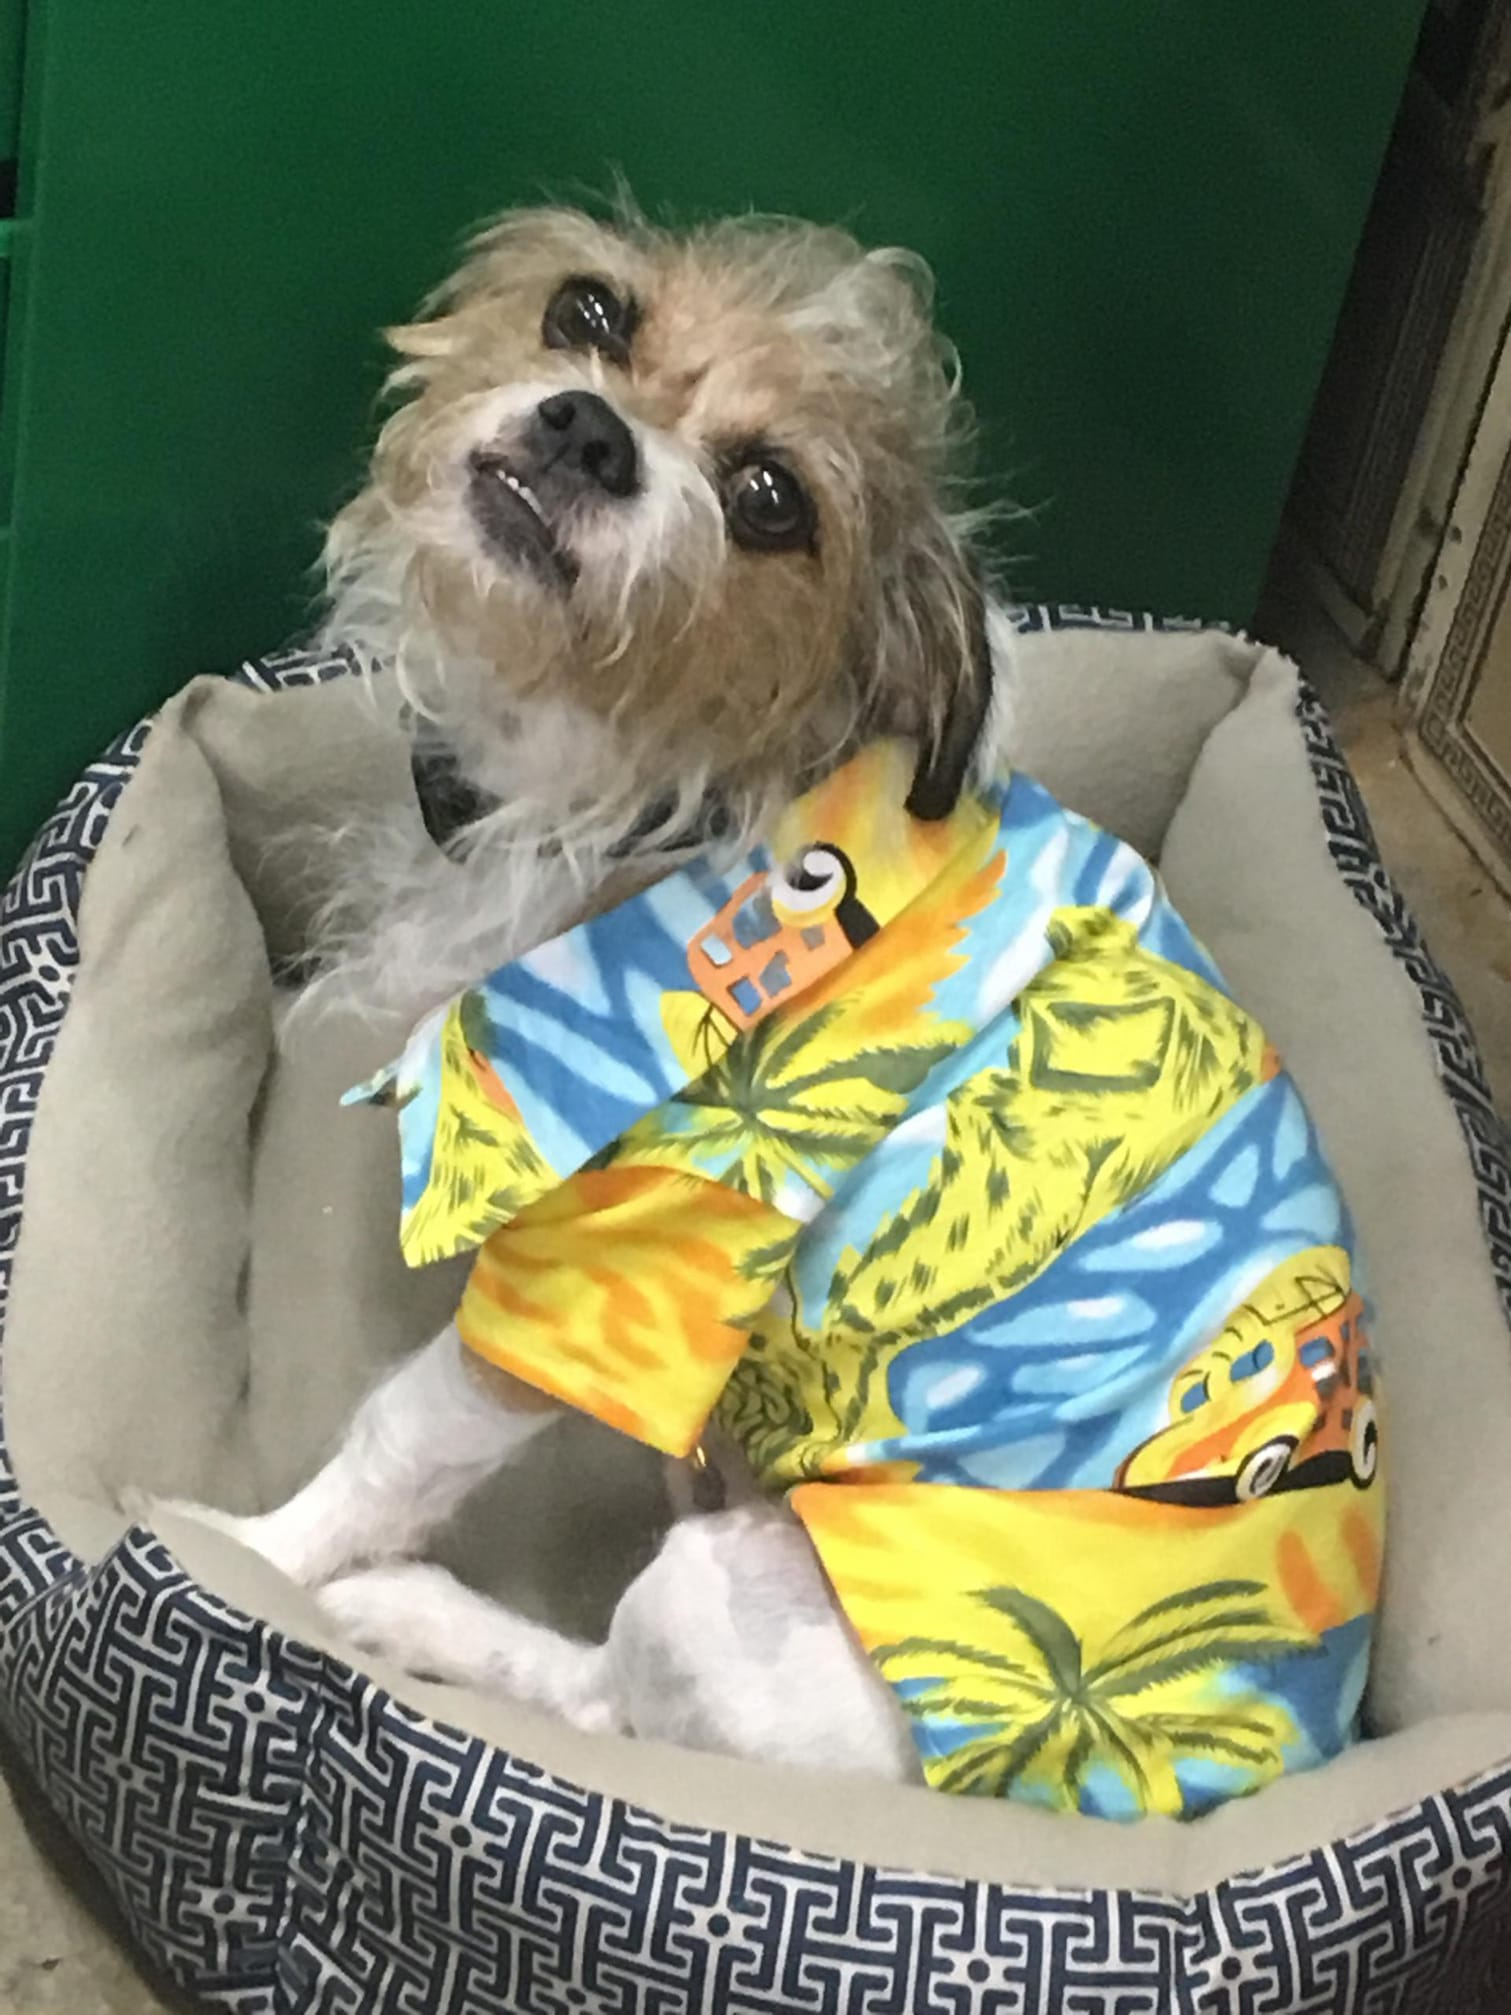 A dog in a dog bed wearing a yellow Hawaiian shirt.